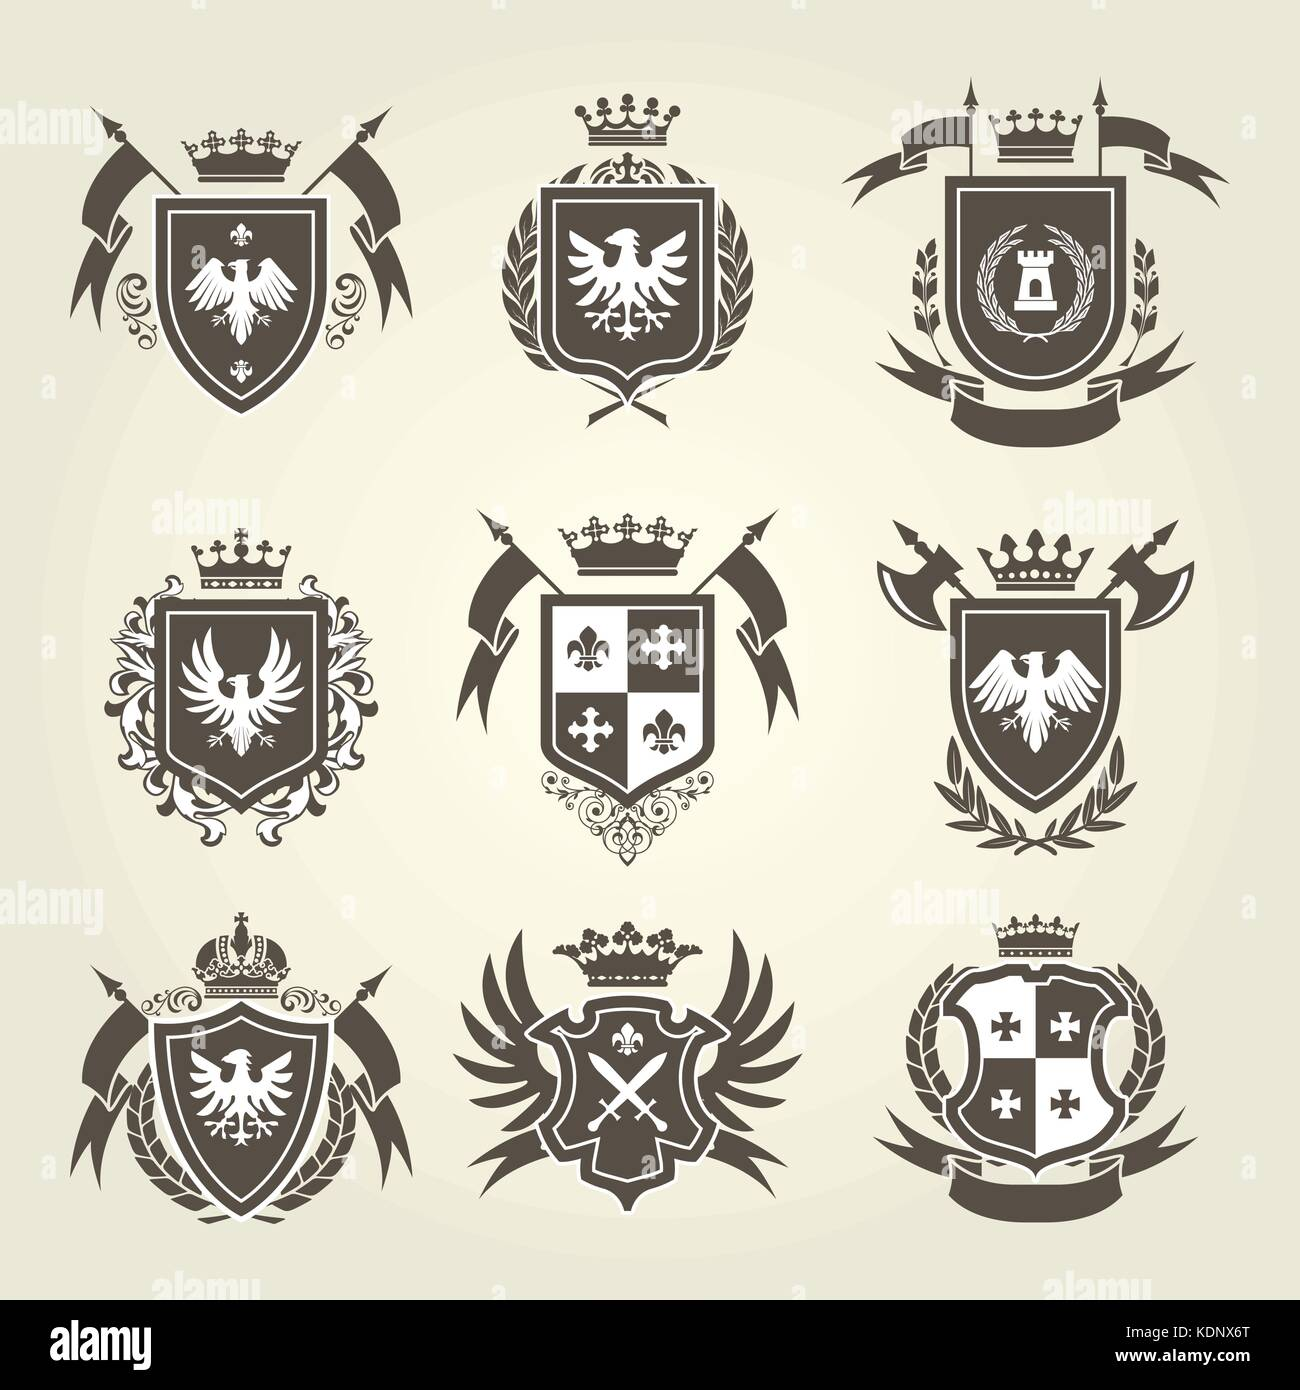 Medieval Royal Coat Of Arms And Knight Emblems Heraldic Shield